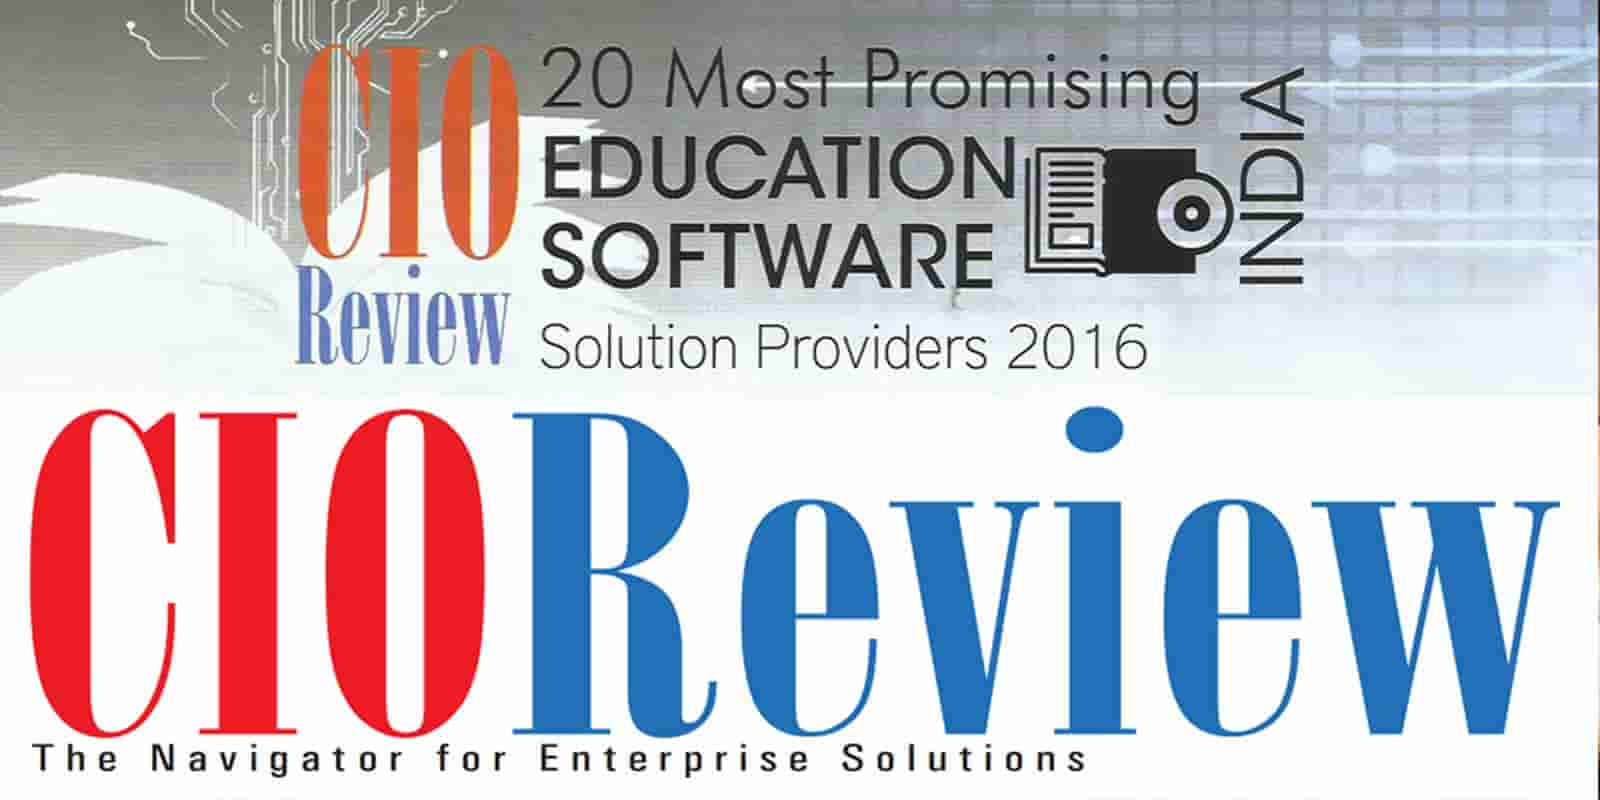 20 Most Promising Education Software